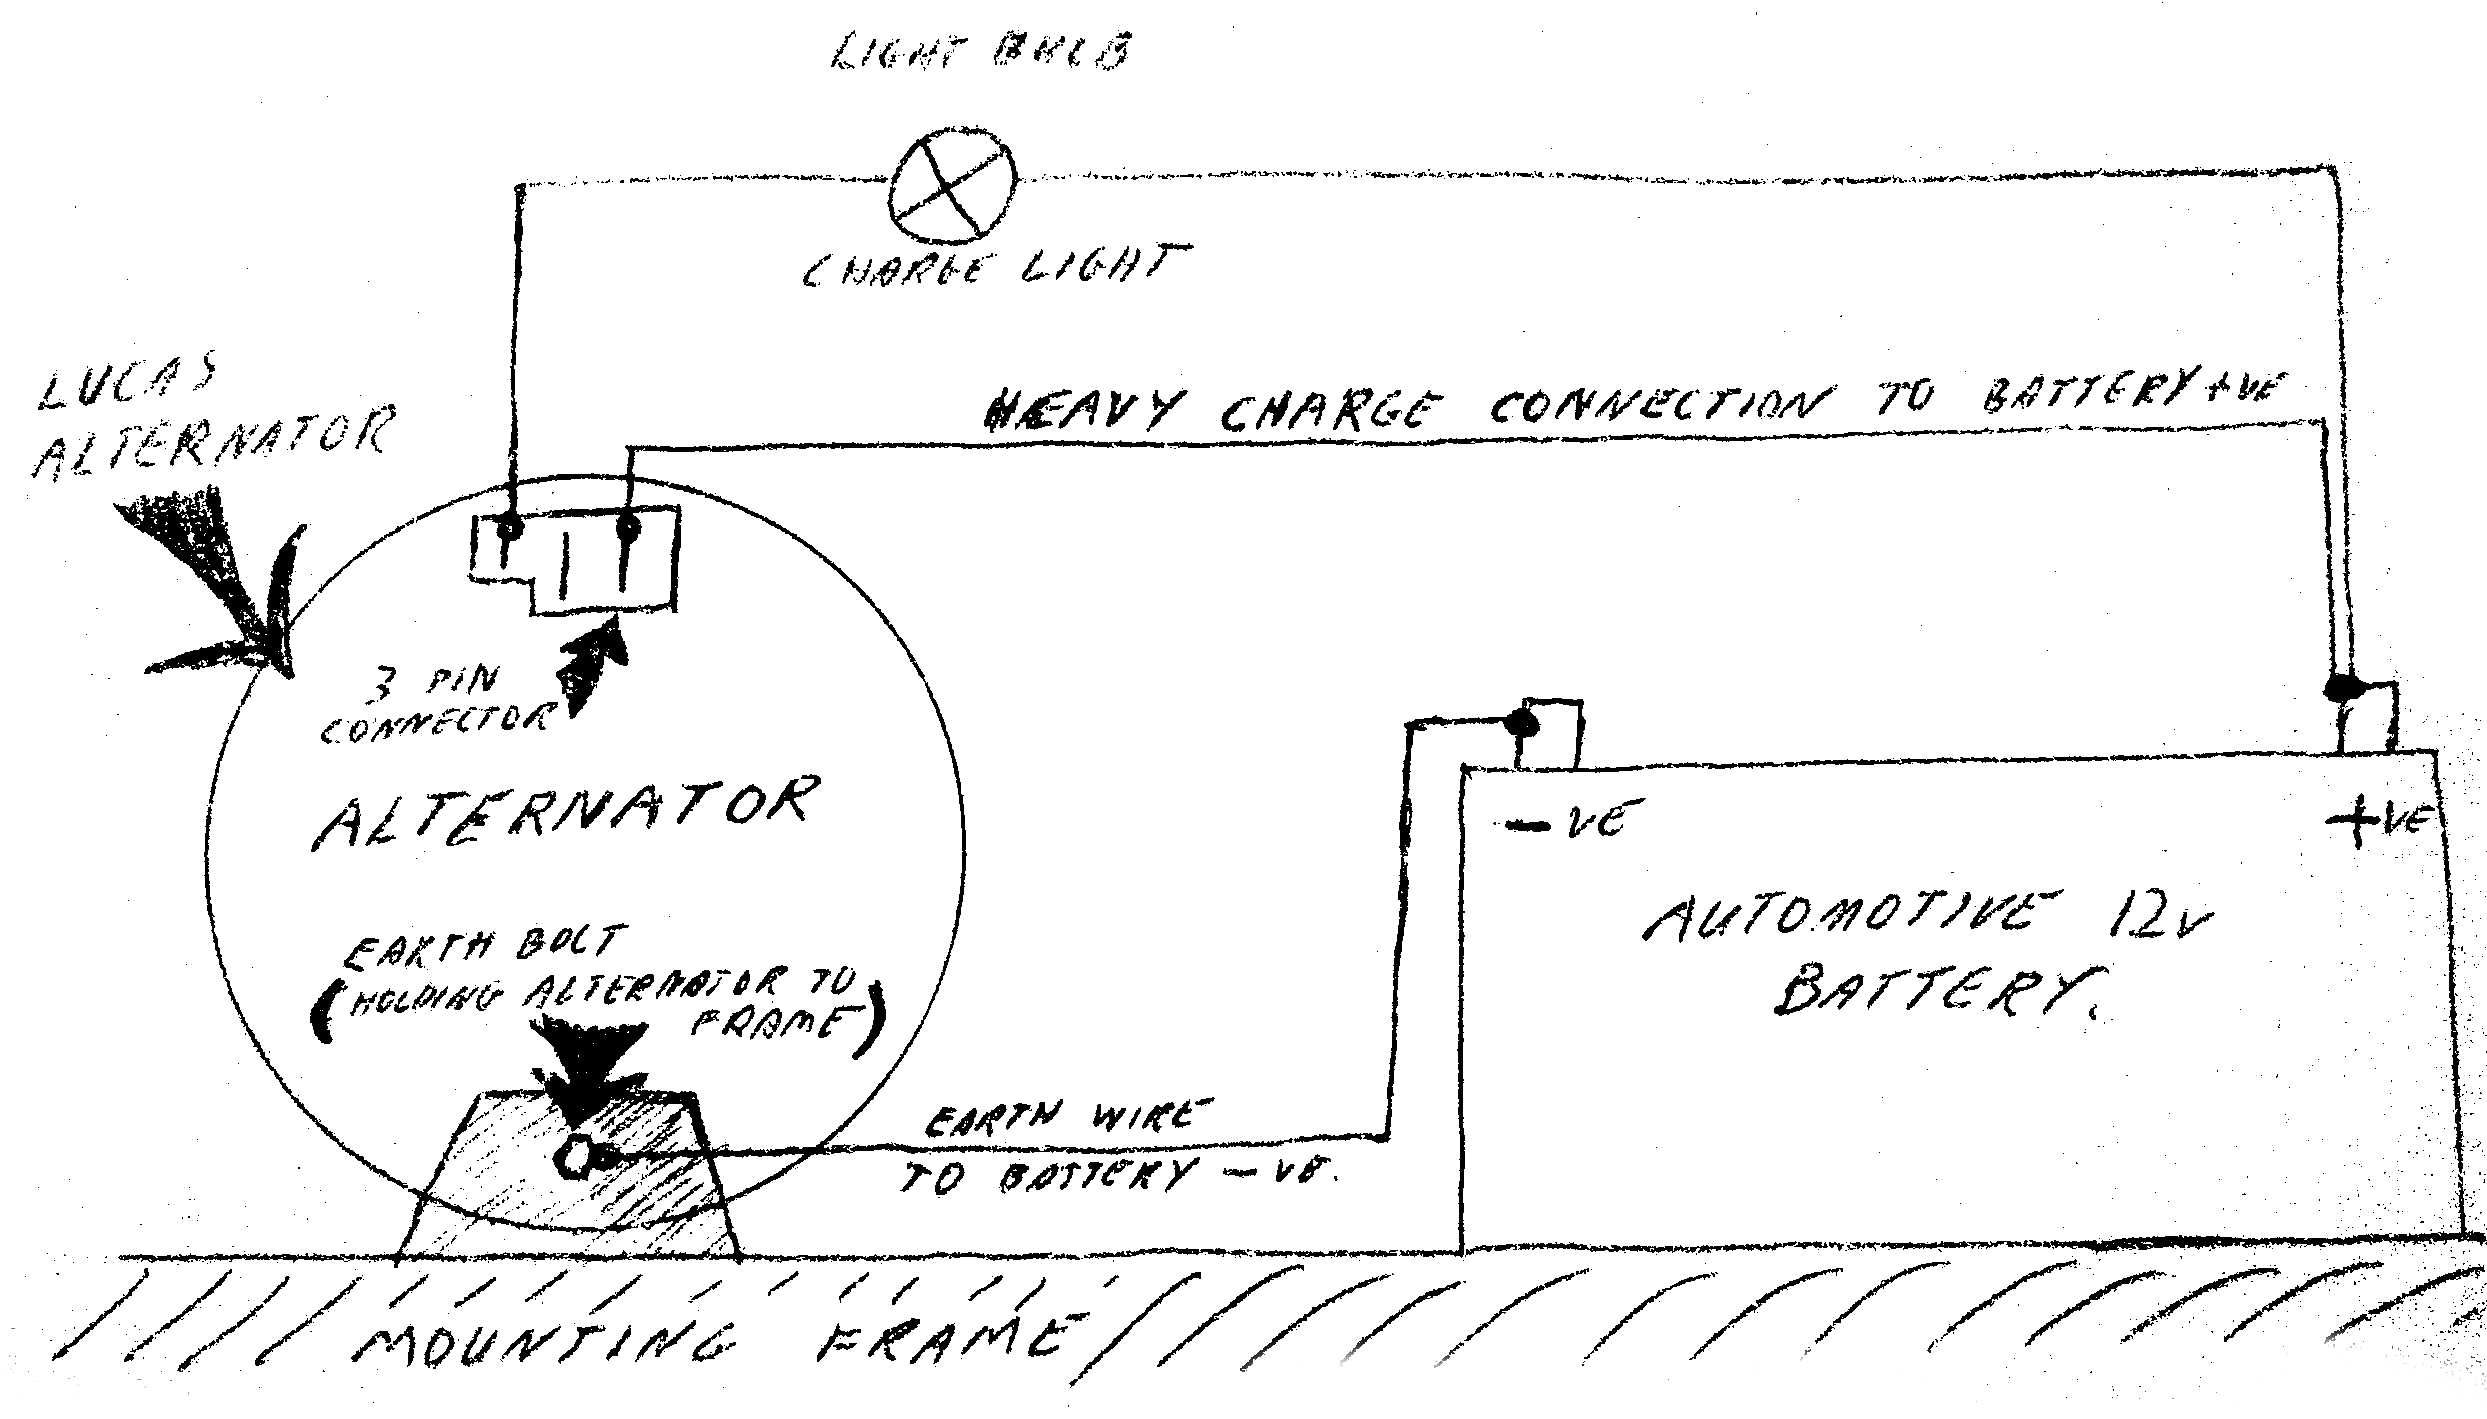 lucas alternator wiring diagram schematics diagramhow to set up an alternator with a stationary engine andy [ 2487 x 1419 Pixel ]